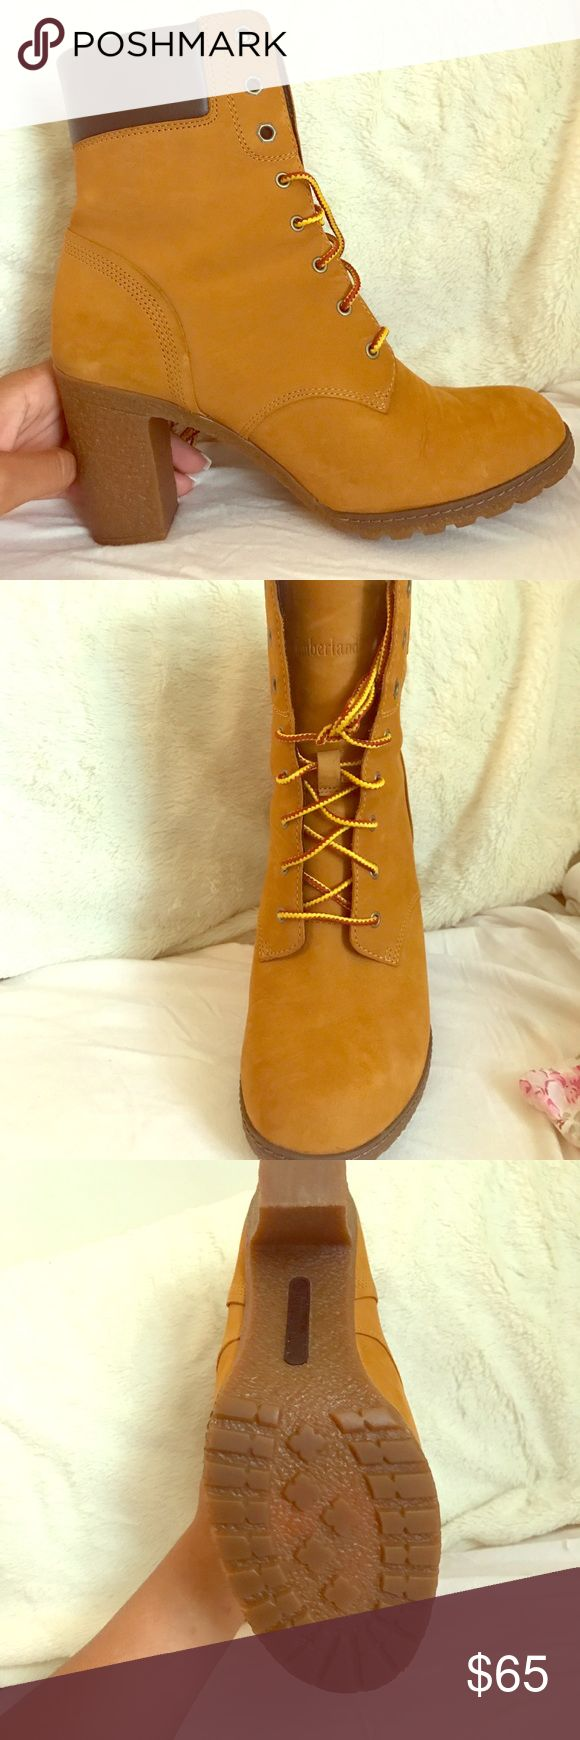 Timberland heels Brand new! Have not worn! Classic colored timberland heels! Timberland Shoes Heeled Boots